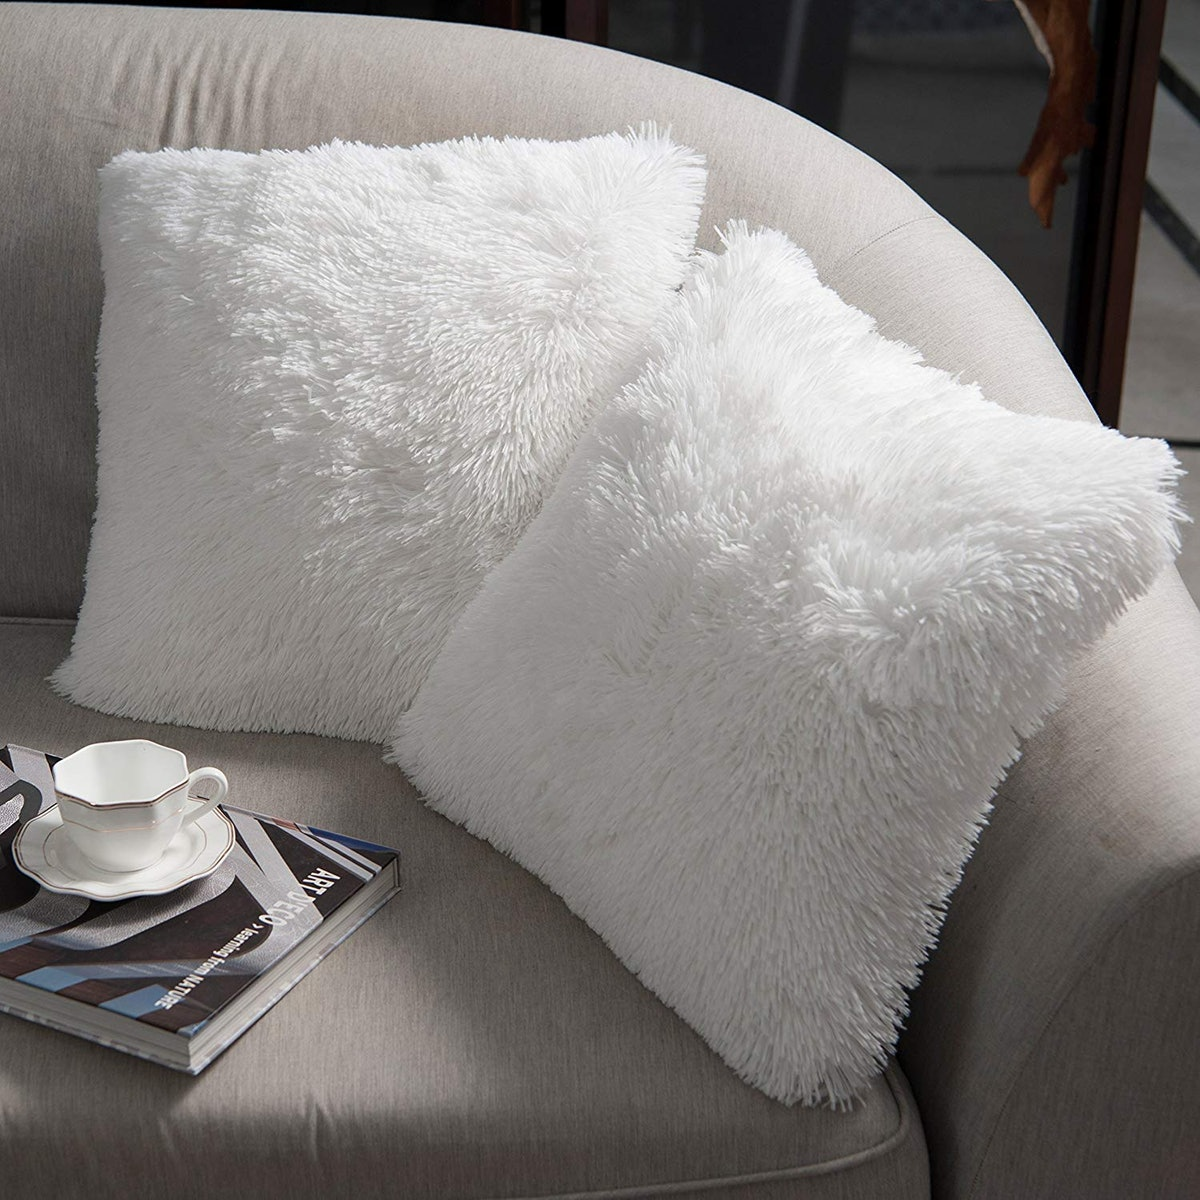 NordECO Soft Throw Pillows Covers